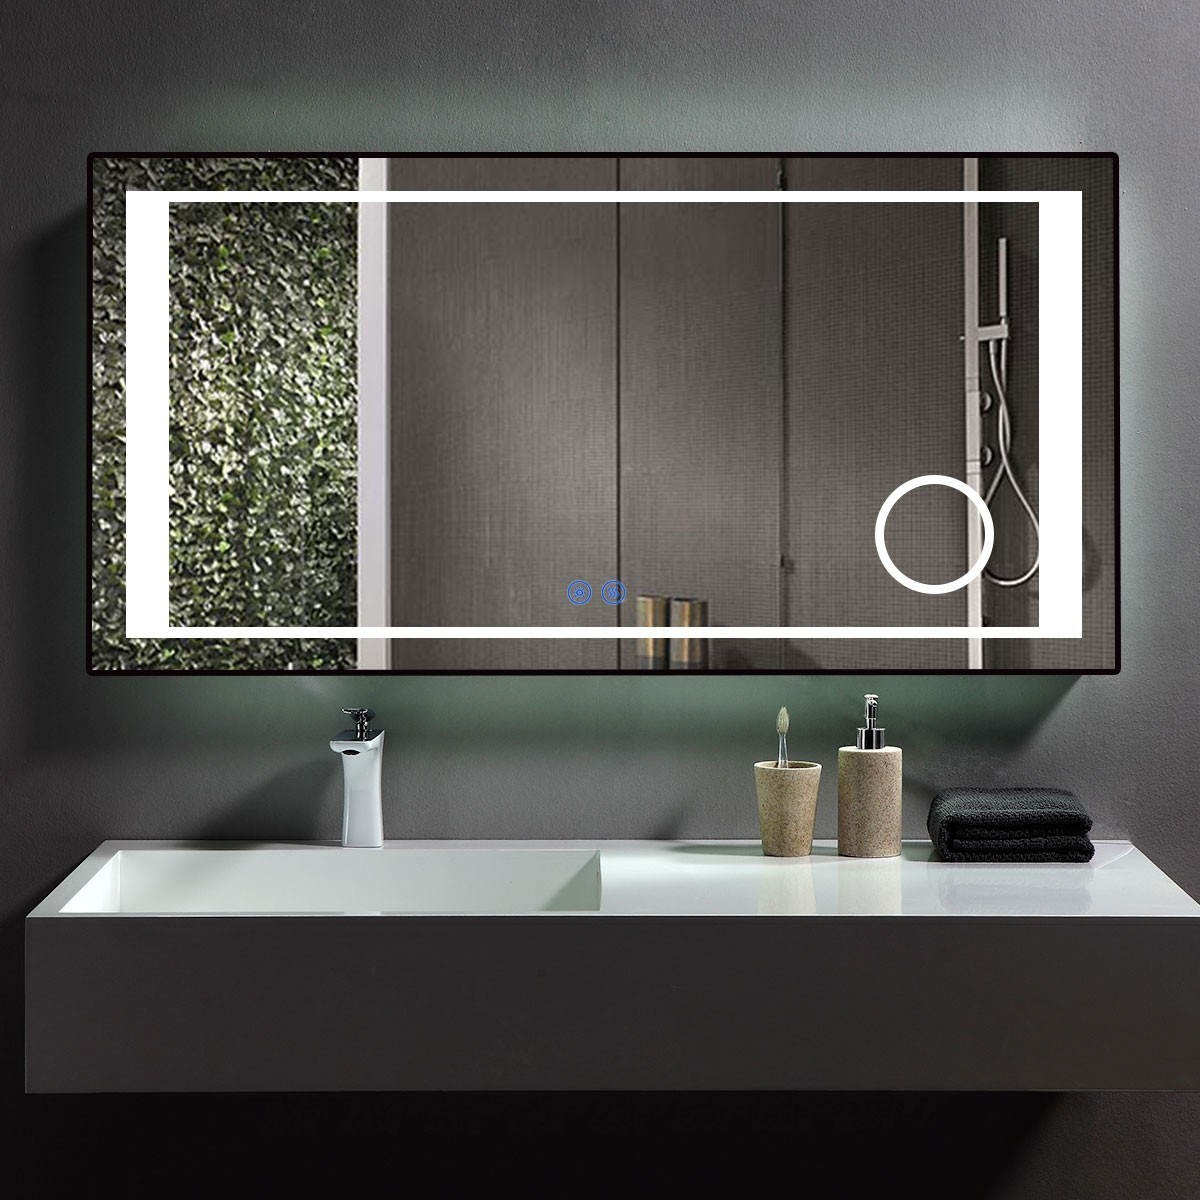 DECORAPORT 48 x 24 Inch LED Bathroom Mirror/Dress Mirror with Touch Button, Magnifier, Anti Fog, Dimmable, Vertical & Horizontal Mount (KT09-4824)